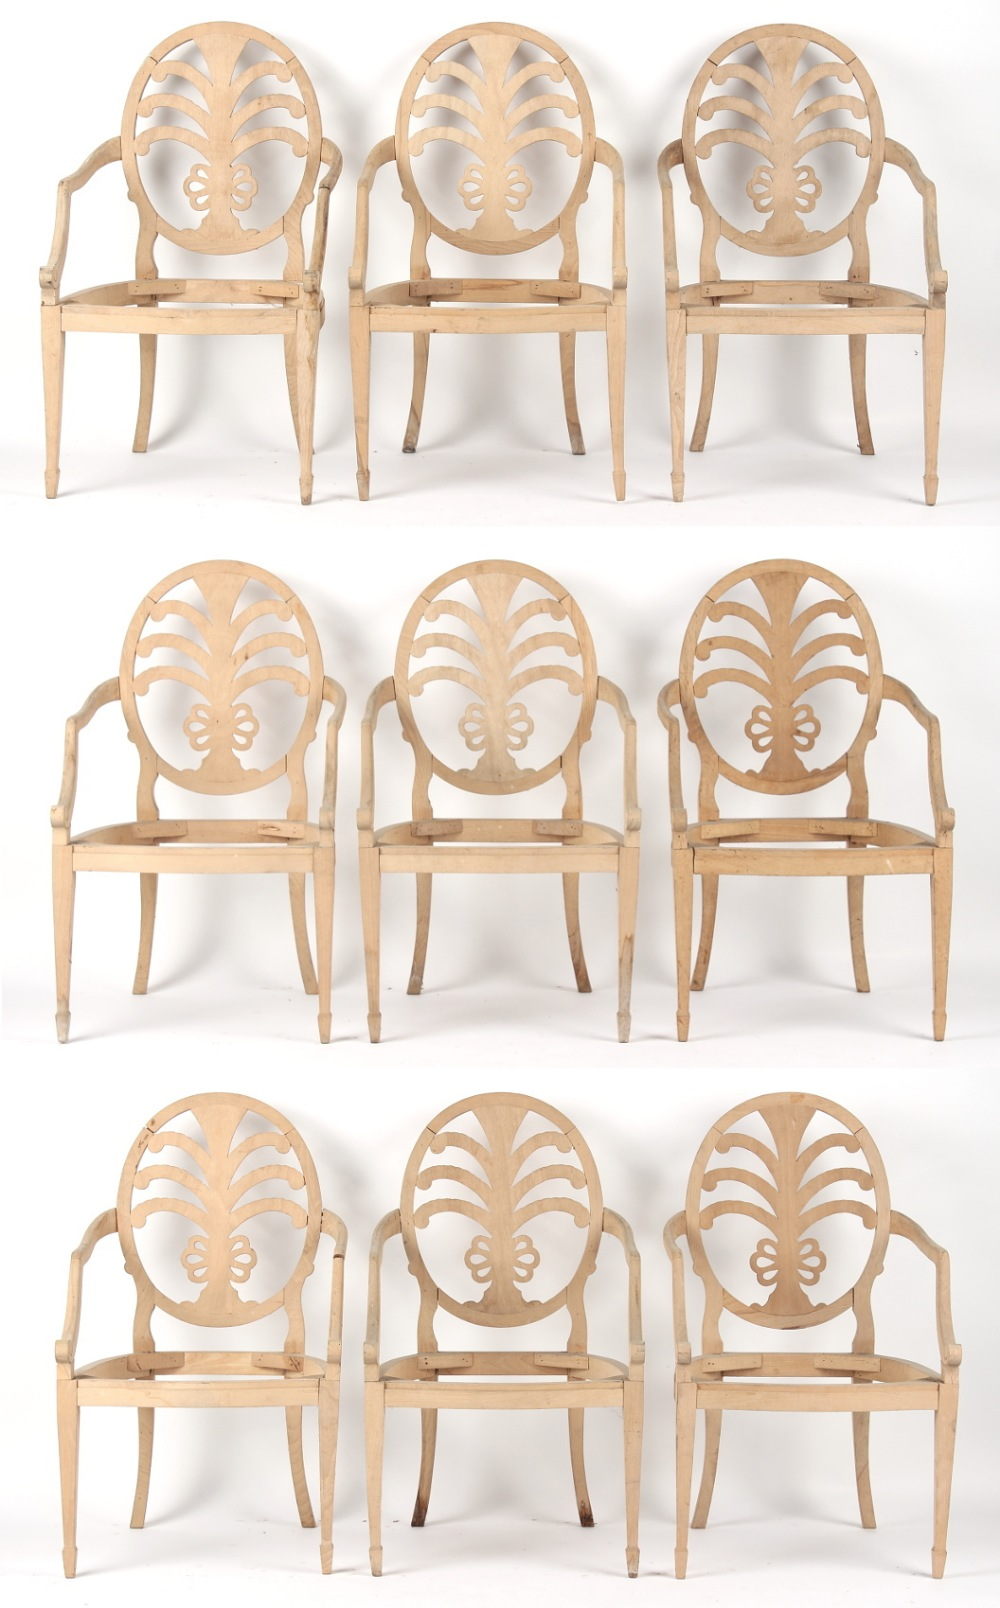 Property of a gentleman - a set of nine Hepplewhite style open armchair or carver chair frames (9).